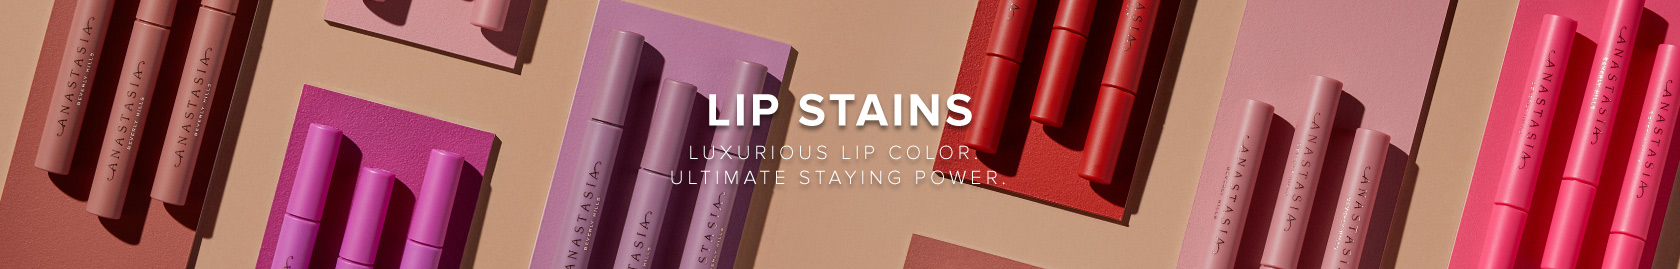 Lip Stain. Luxurious Lip Color, Ultimate Staying Power